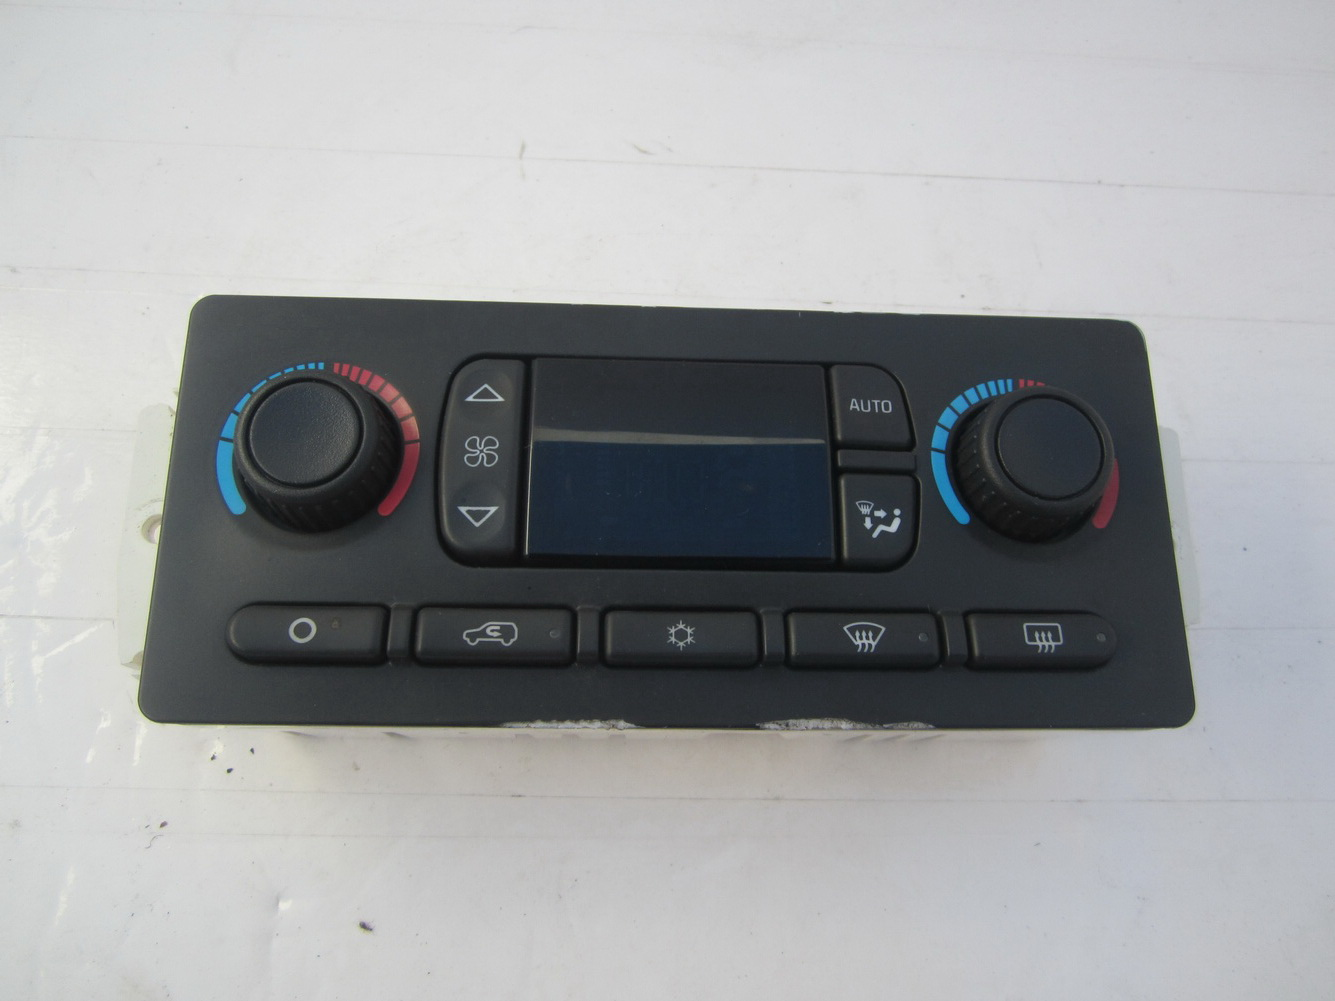 05 2005 06 2006 CHEVY TAHOE DUAL ZONE HEAT AC CLIMATE CONTROL 10367041: Used Auto Parts ...